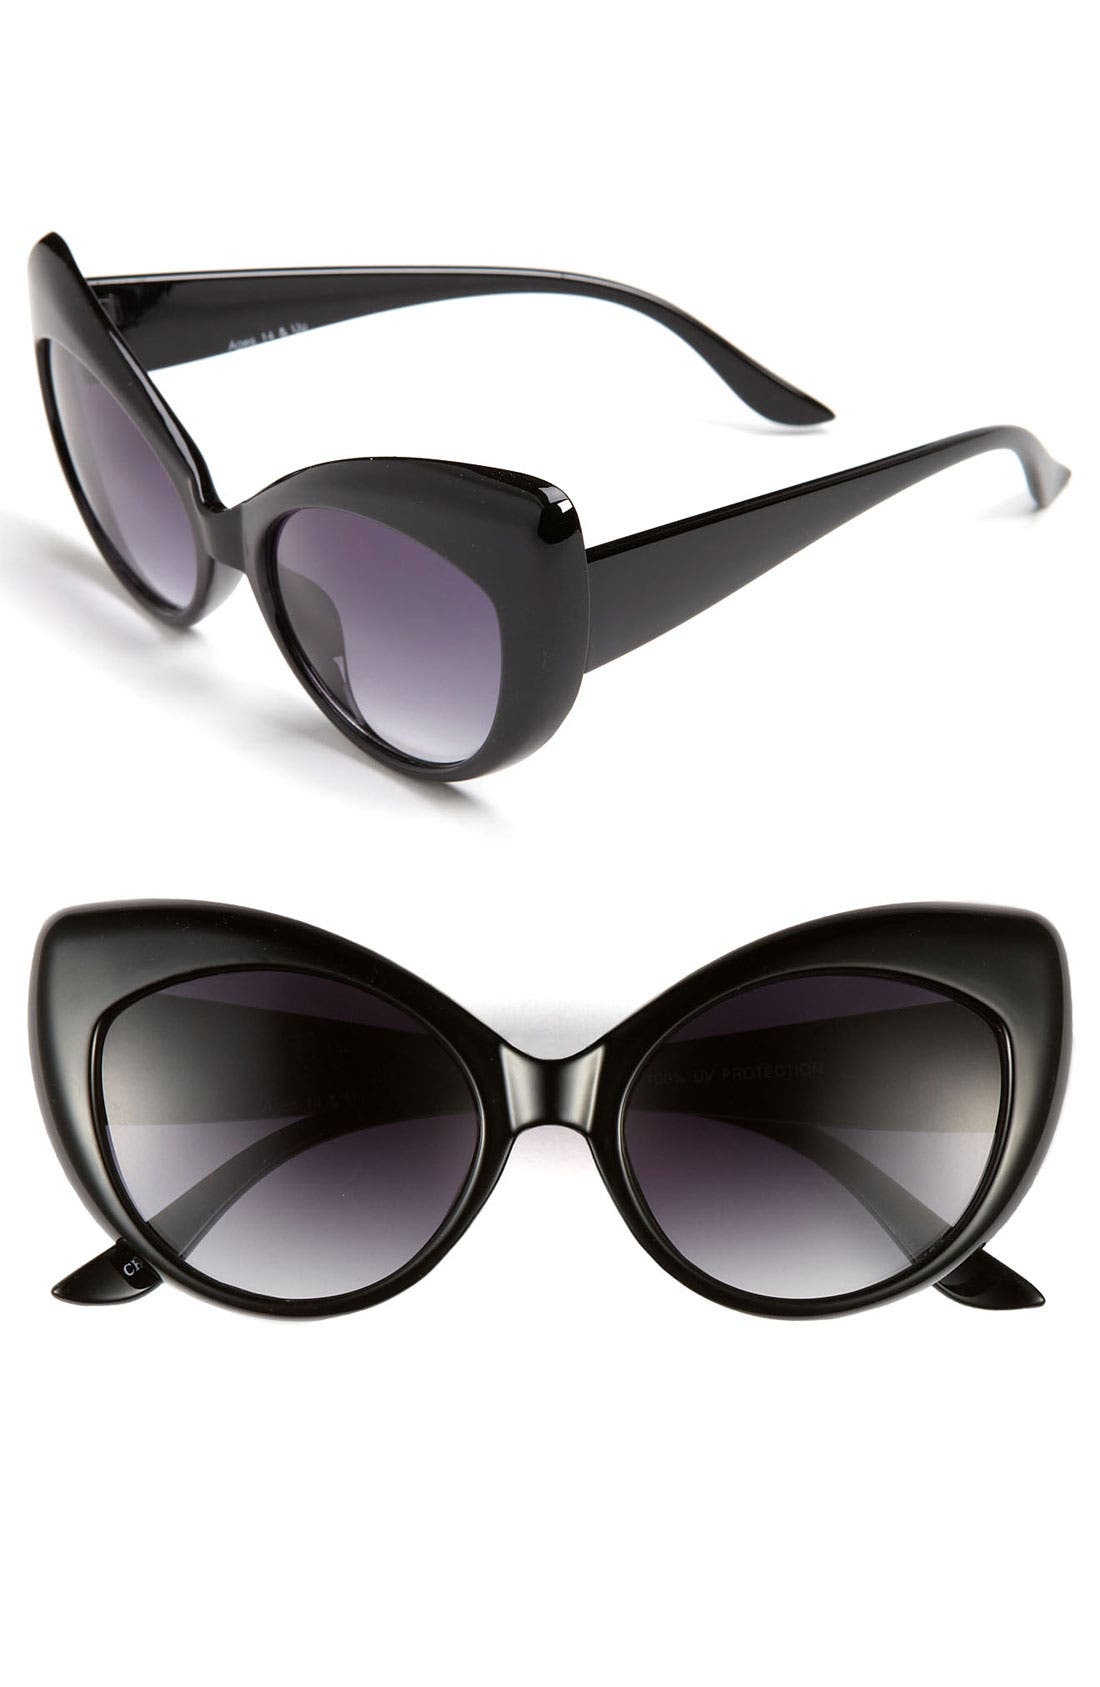 Alternate Image 1 Selected - FE NY 'Lindy Hop' Cat's Eye Sunglasses